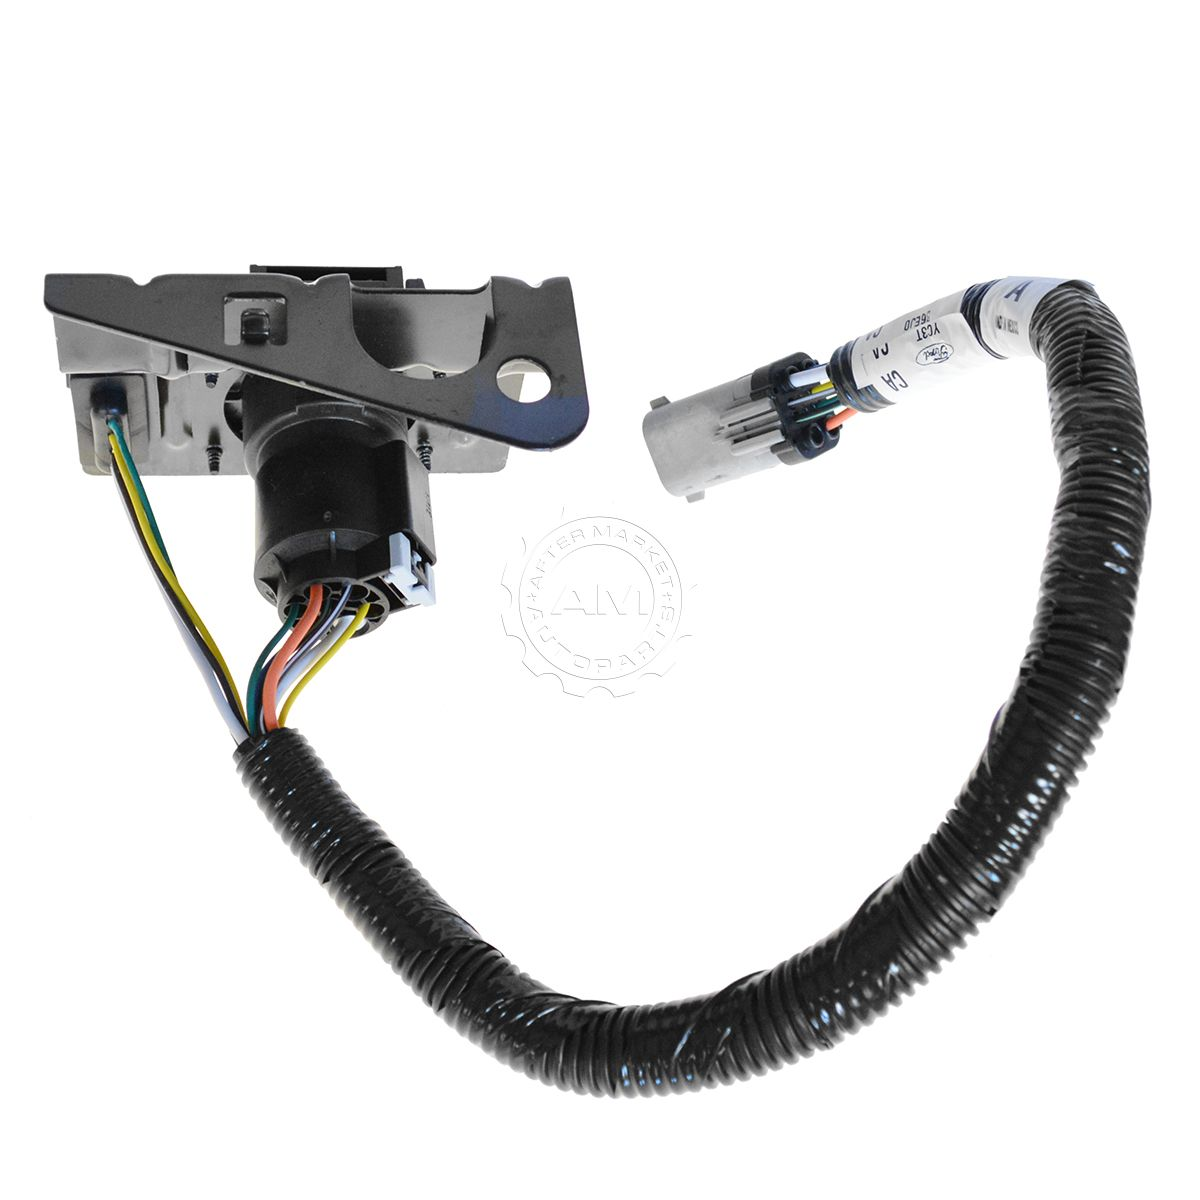 ford 4 \u0026 7 pin trailer tow wiring harness w plug \u0026 bracket for f250ford 4 \u0026 7 pin trailer tow wiring harness w plug \u0026 bracket for f250